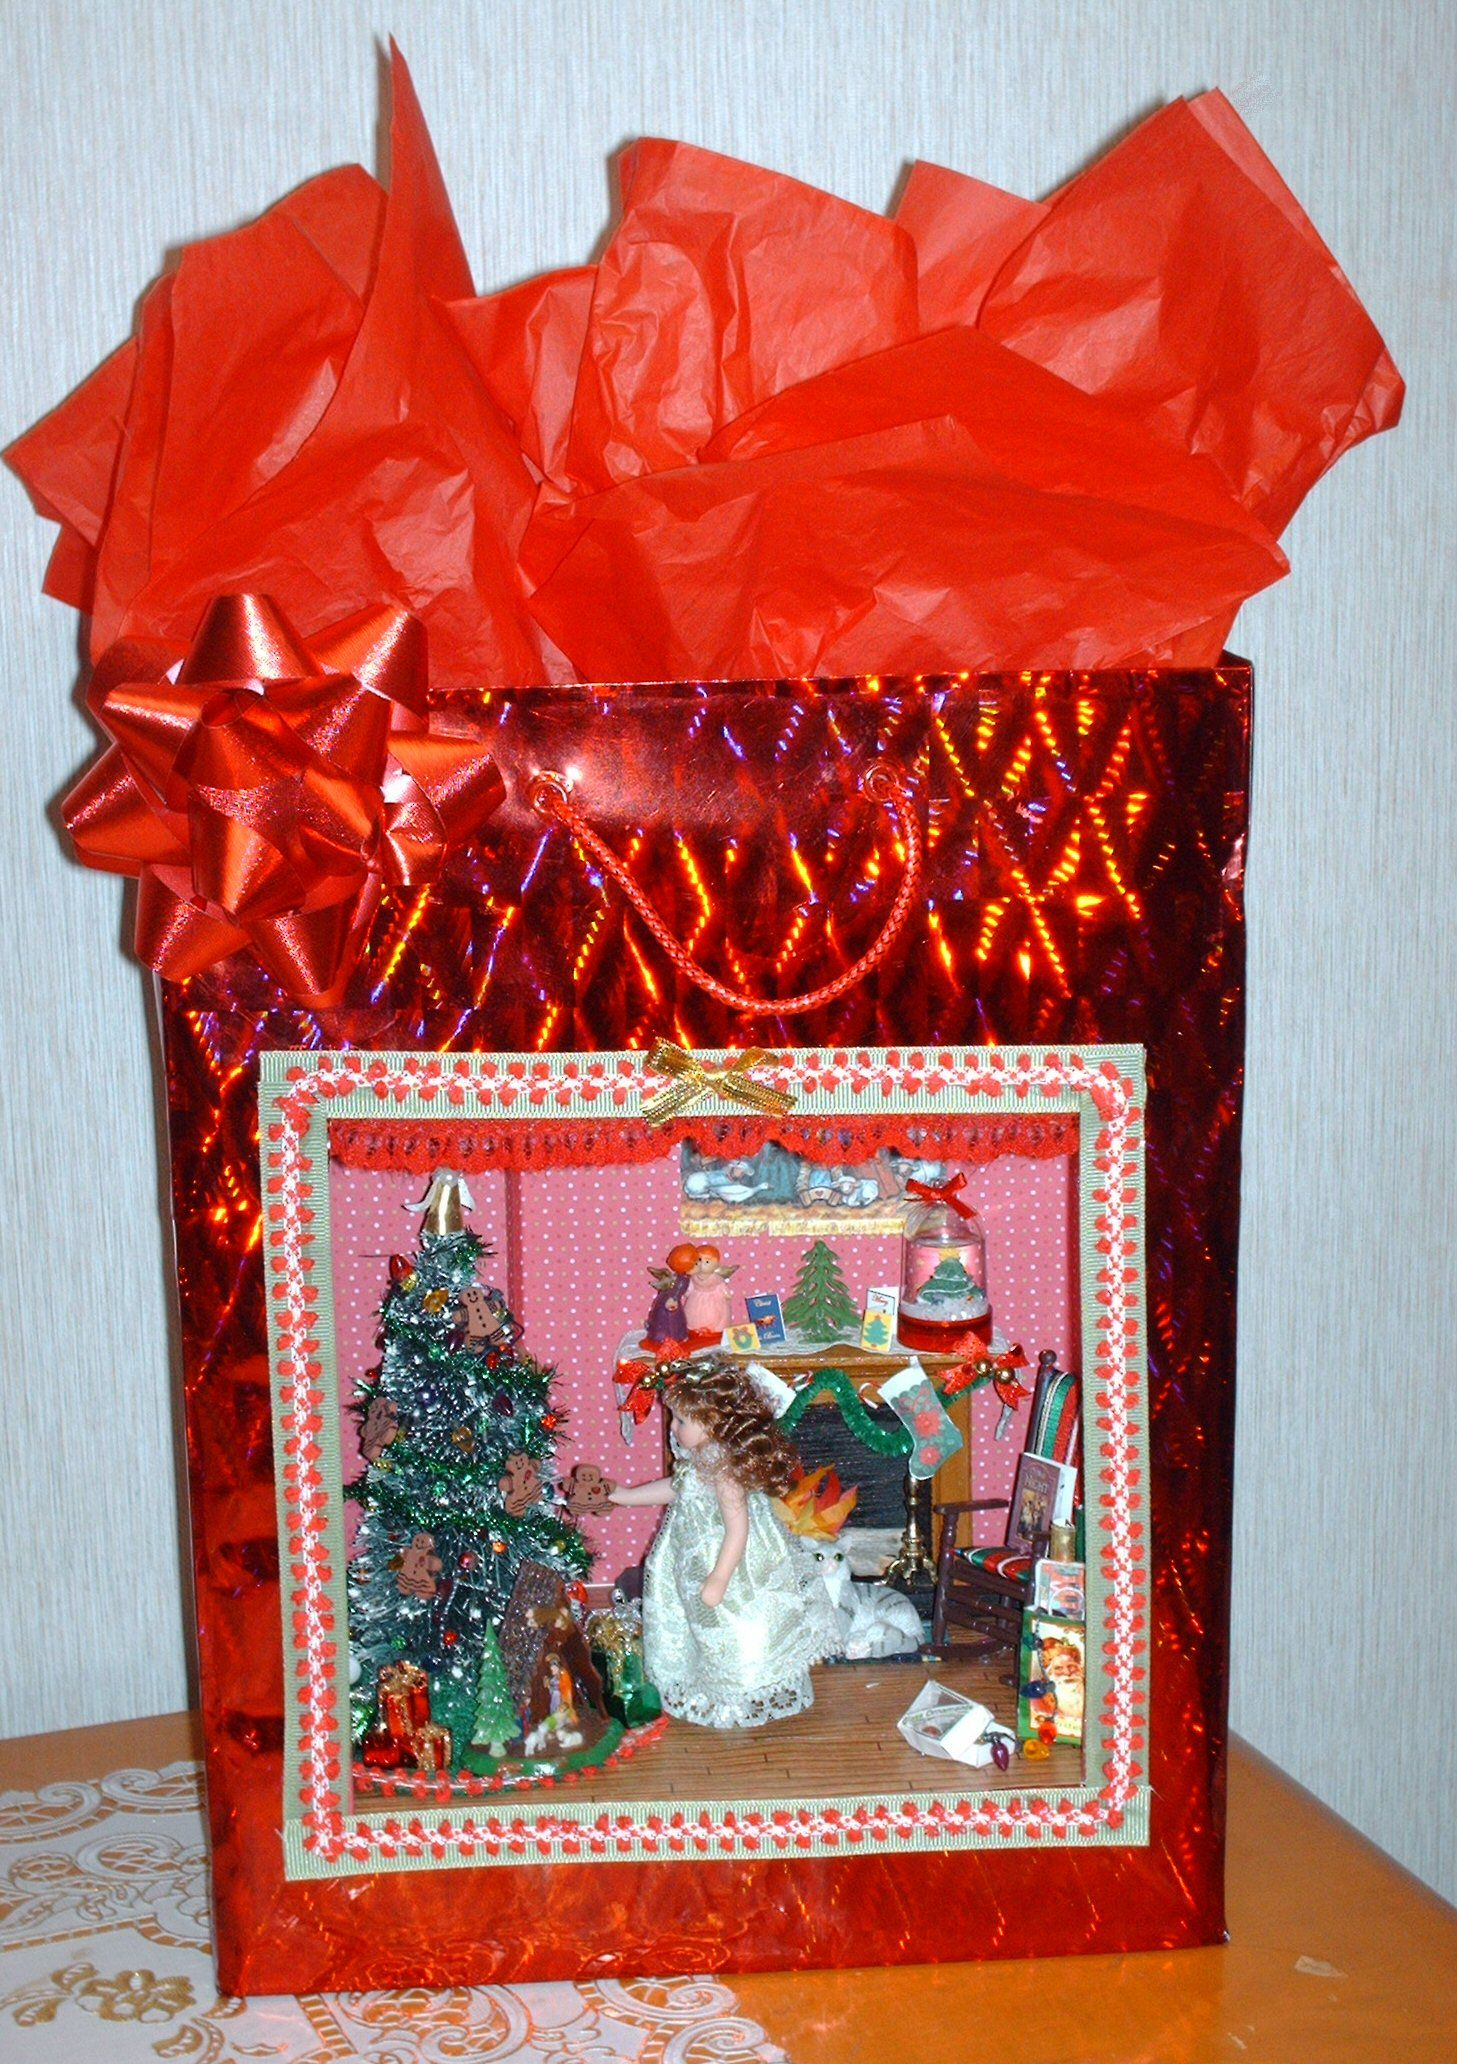 My musical light up Christmas gift bag | Miniature Projects by me ...